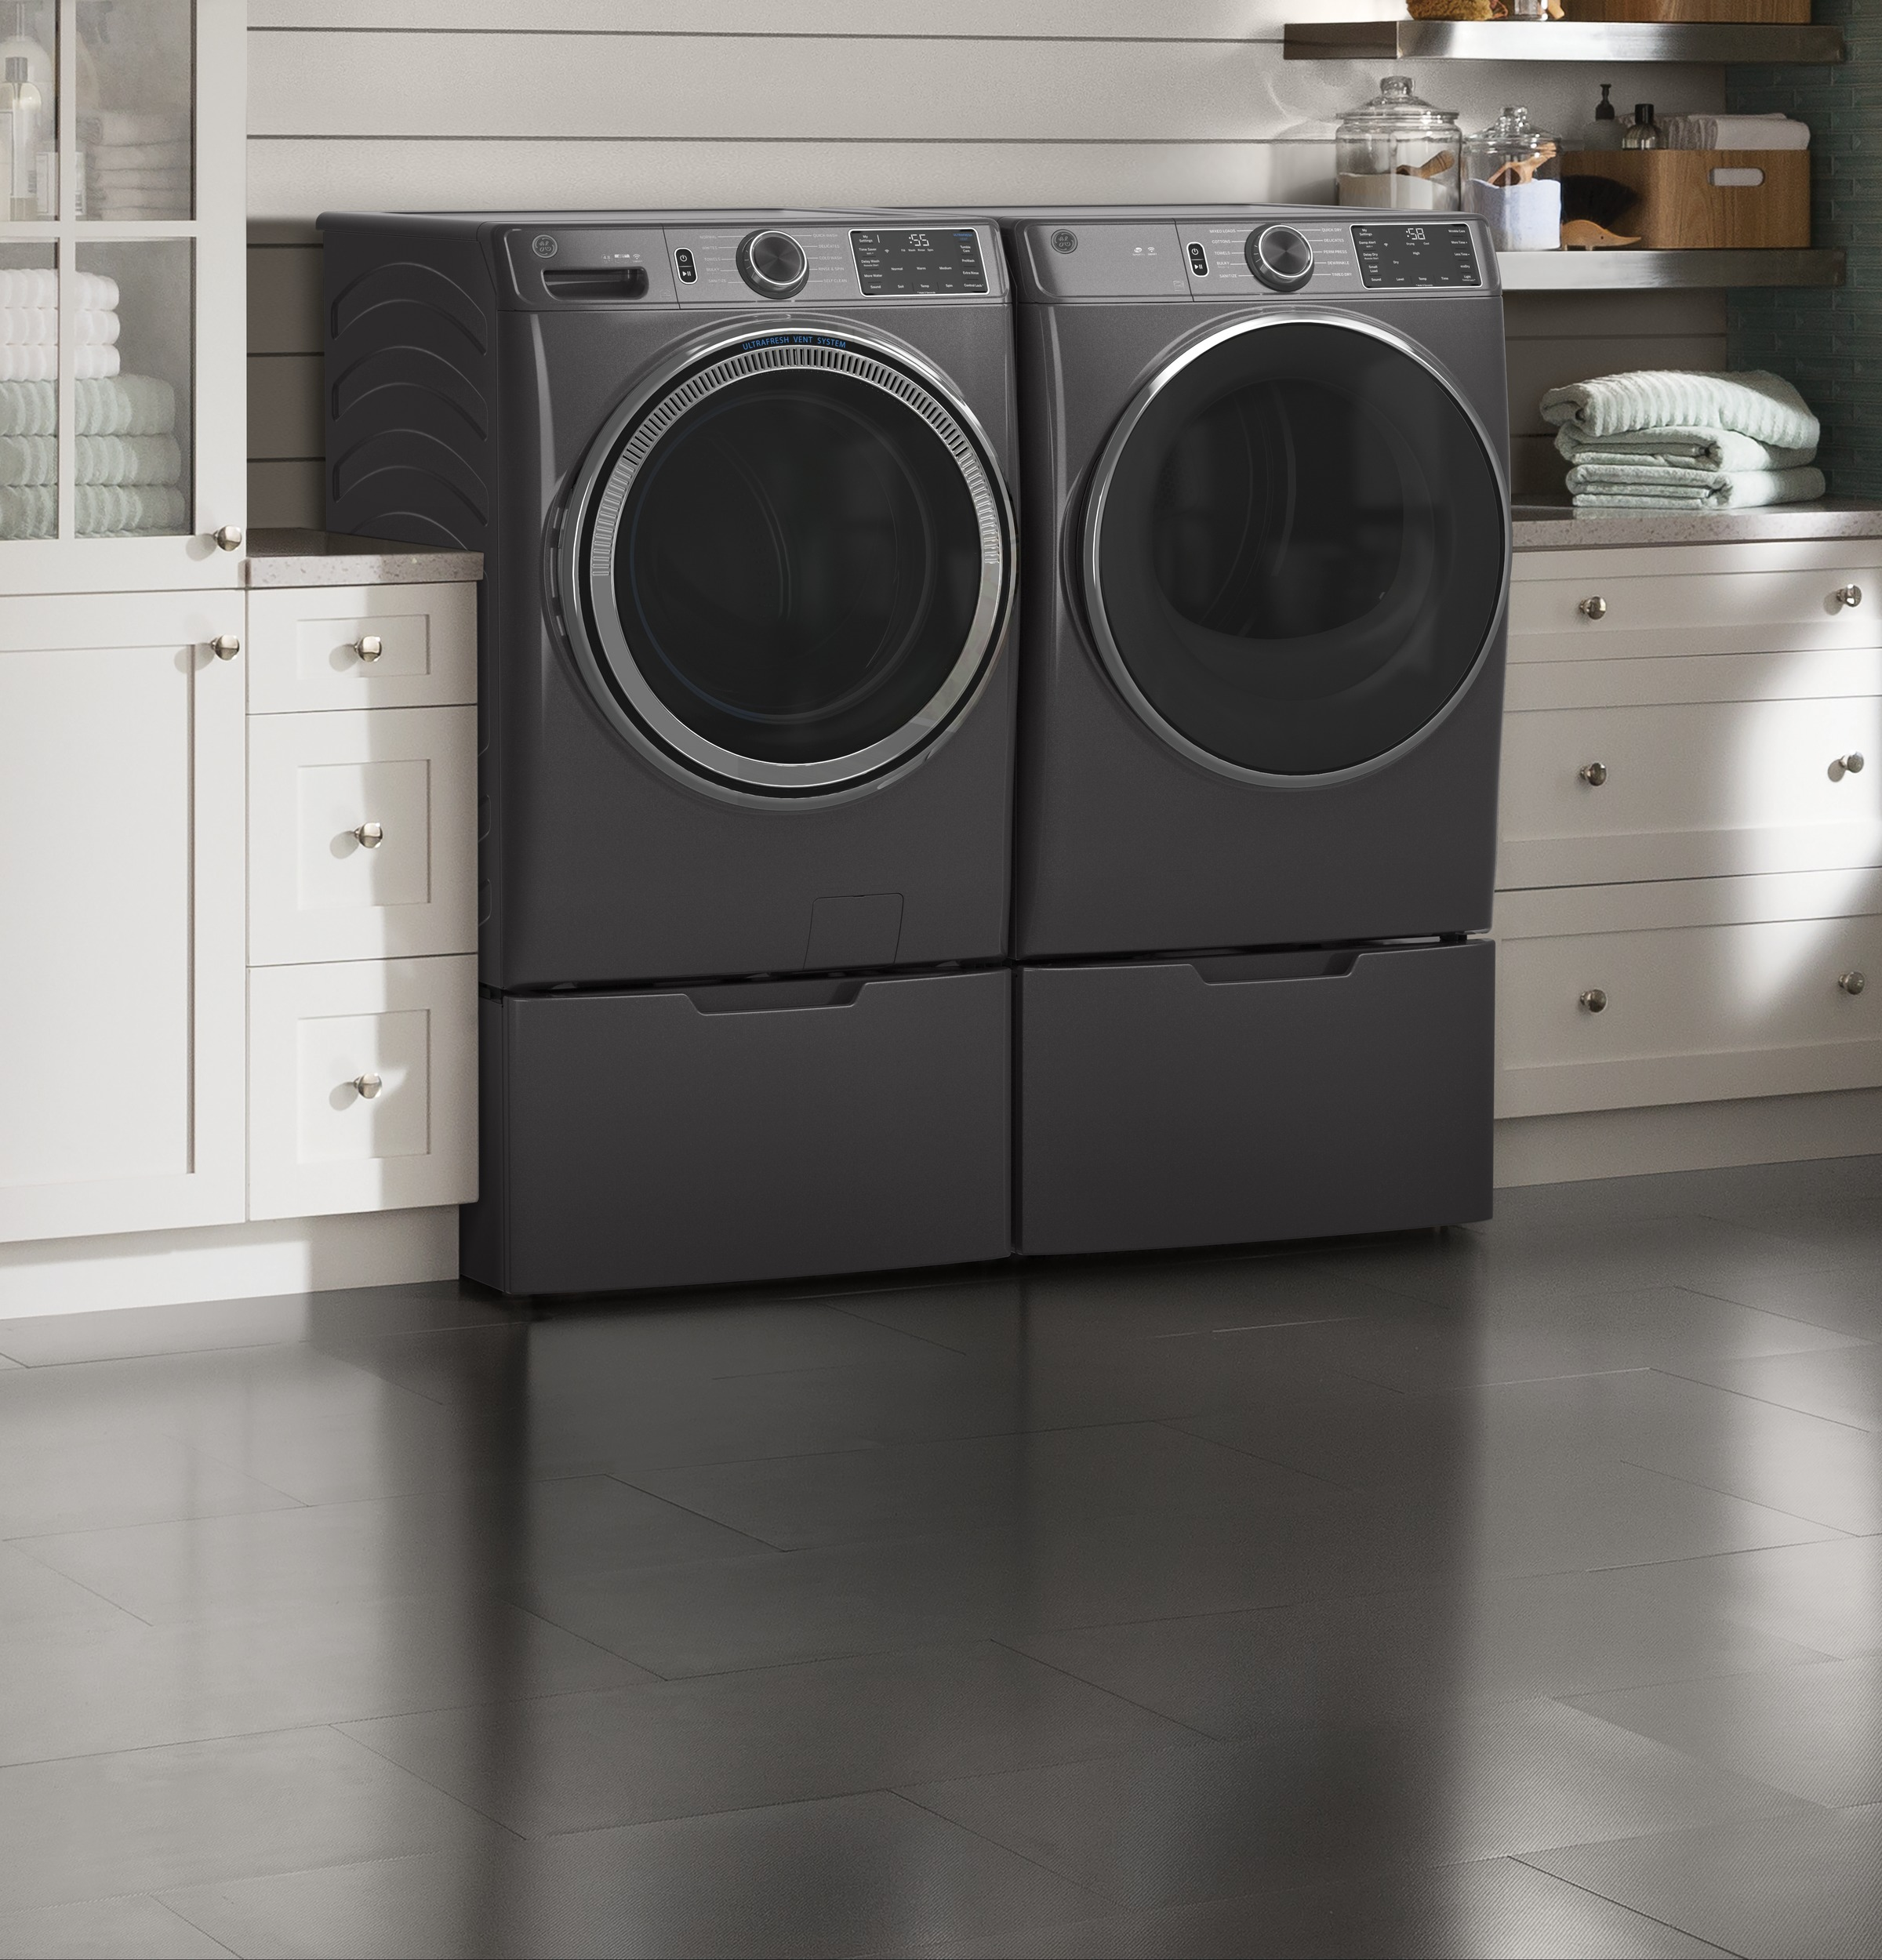 Model: GFD55GSPNDG   GE GE® 7.8 cu. ft. Capacity Smart Front Load Gas Dryer with Sanitize Cycle